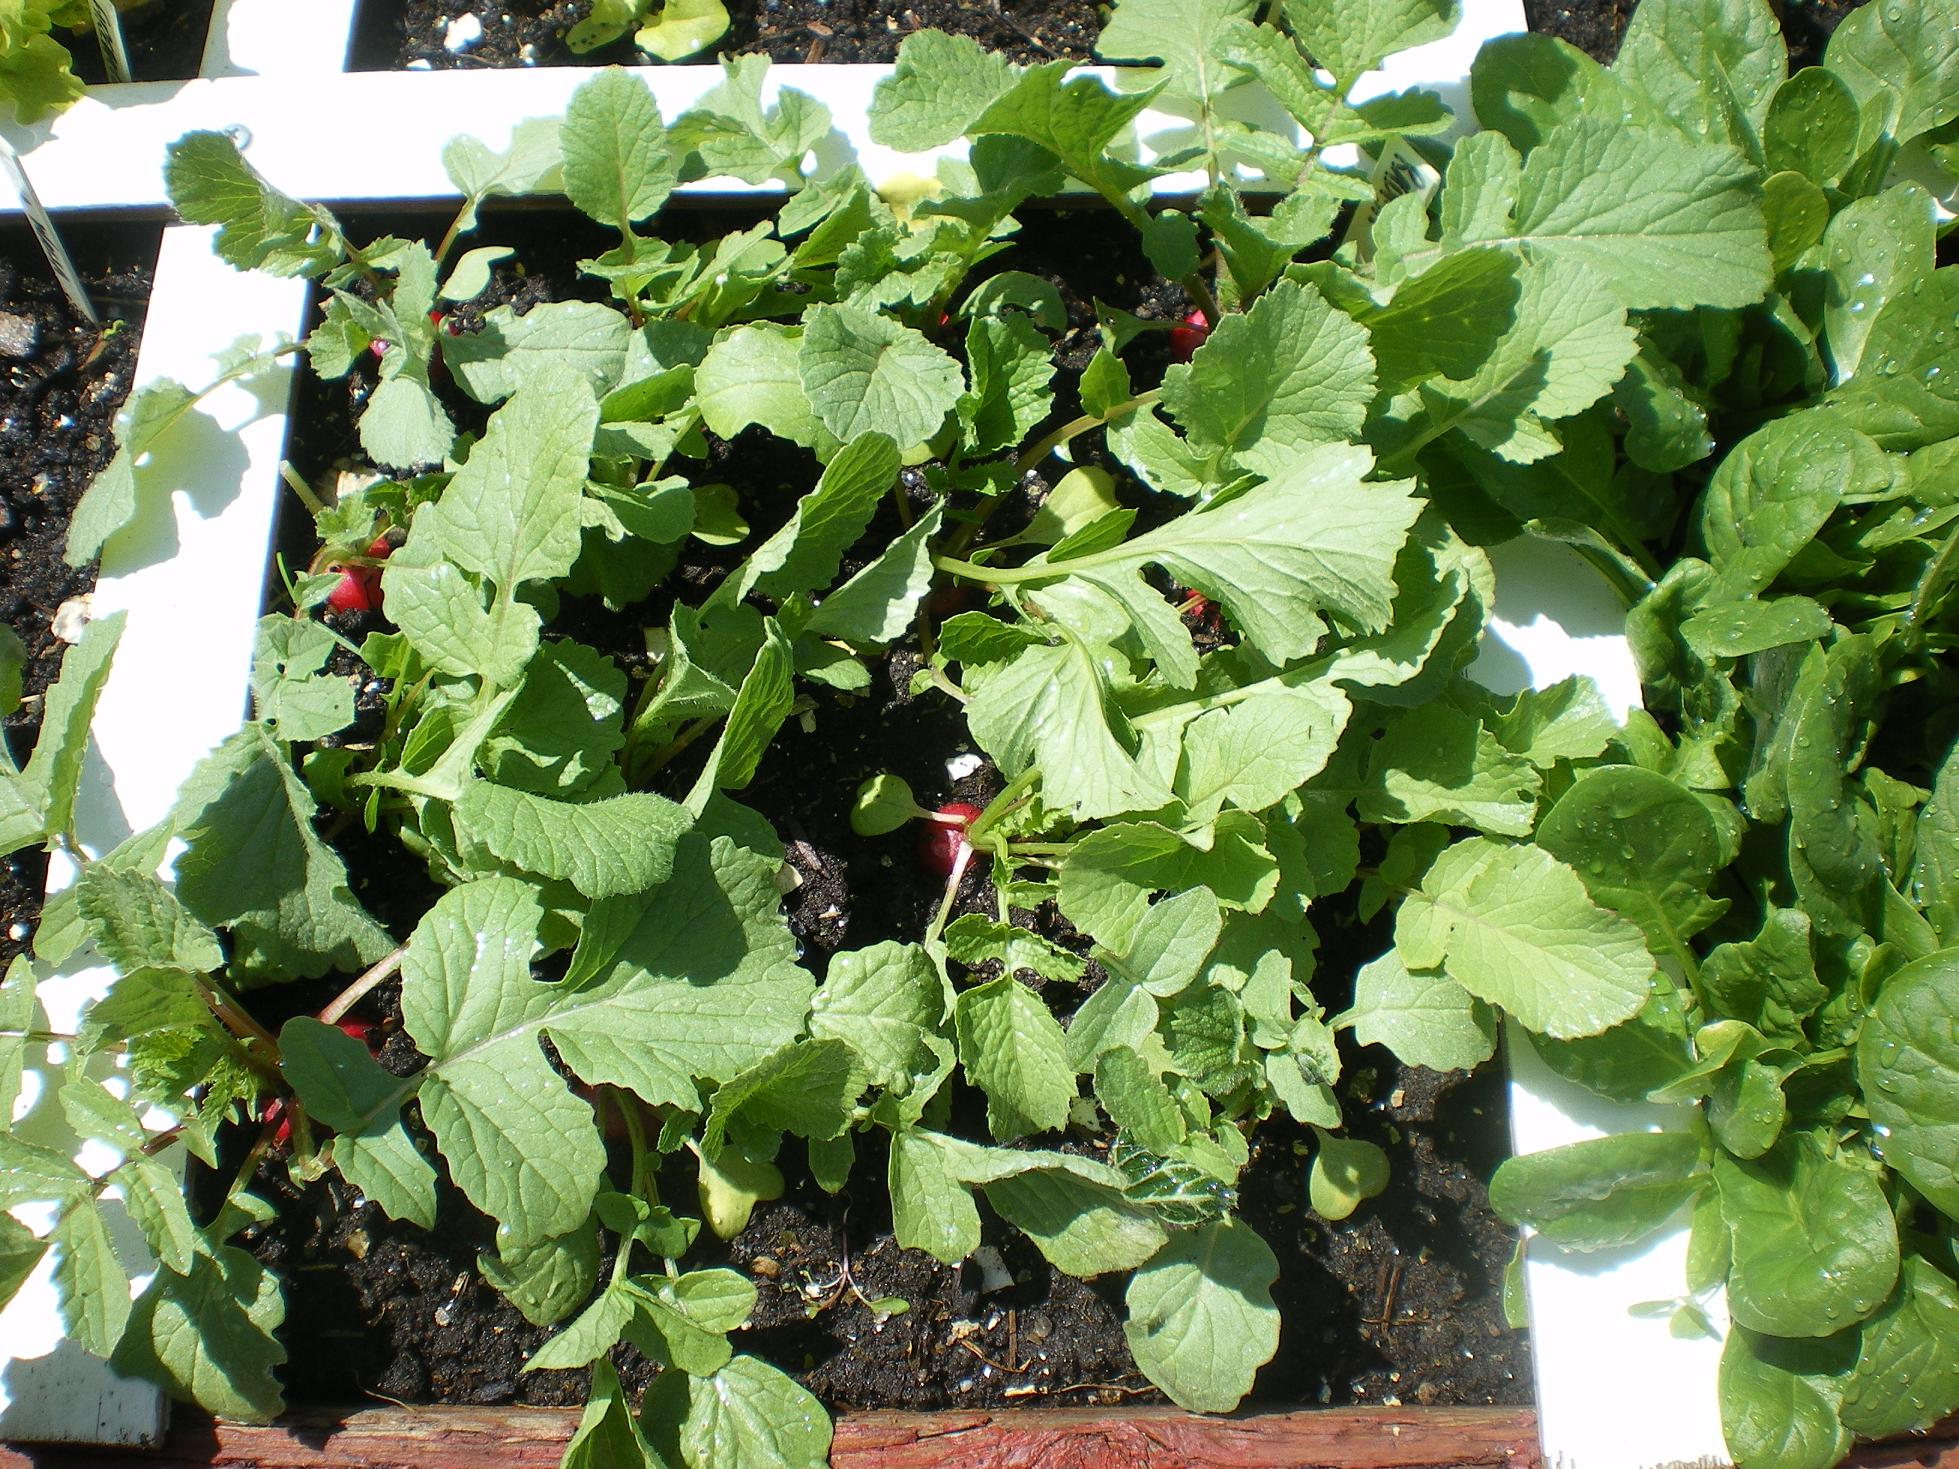 Old I How Do You Know When Radishes Are Wealthy Earth When To Harvest French Radishes When To Harvest Radish Sprouts houzz 01 When To Harvest Radishes